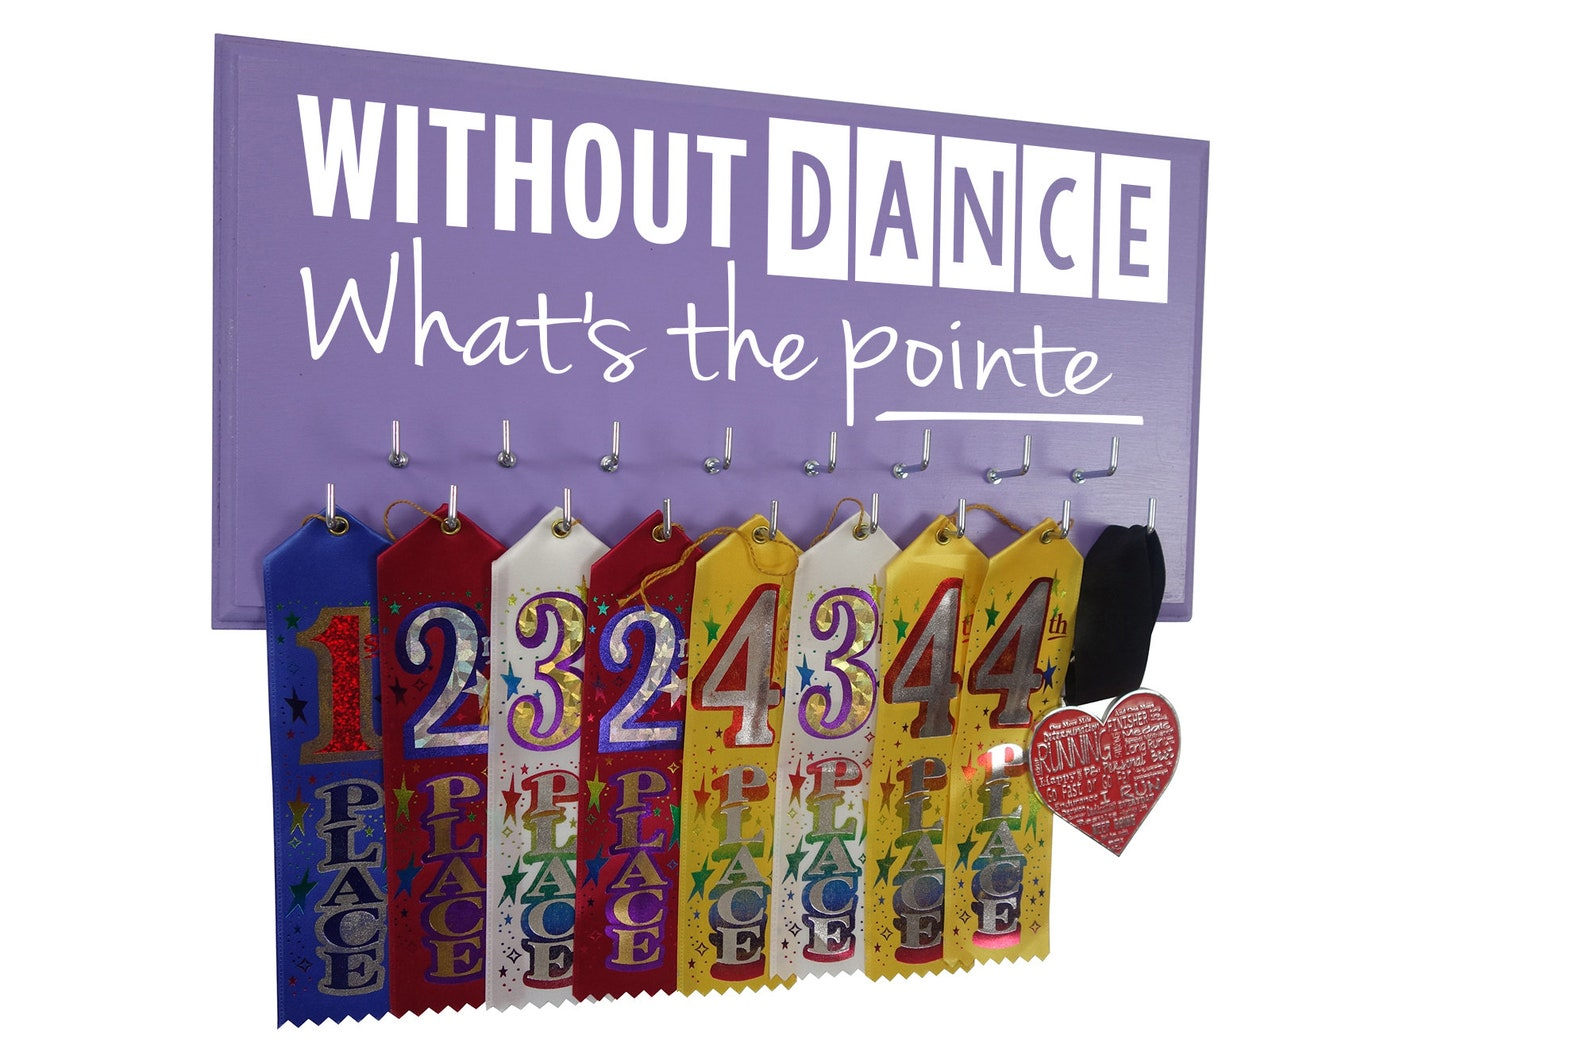 dancing gift - display your medals awards & ribbons from competition - dance hanger holder - wall mounted rack - ballet - pointe